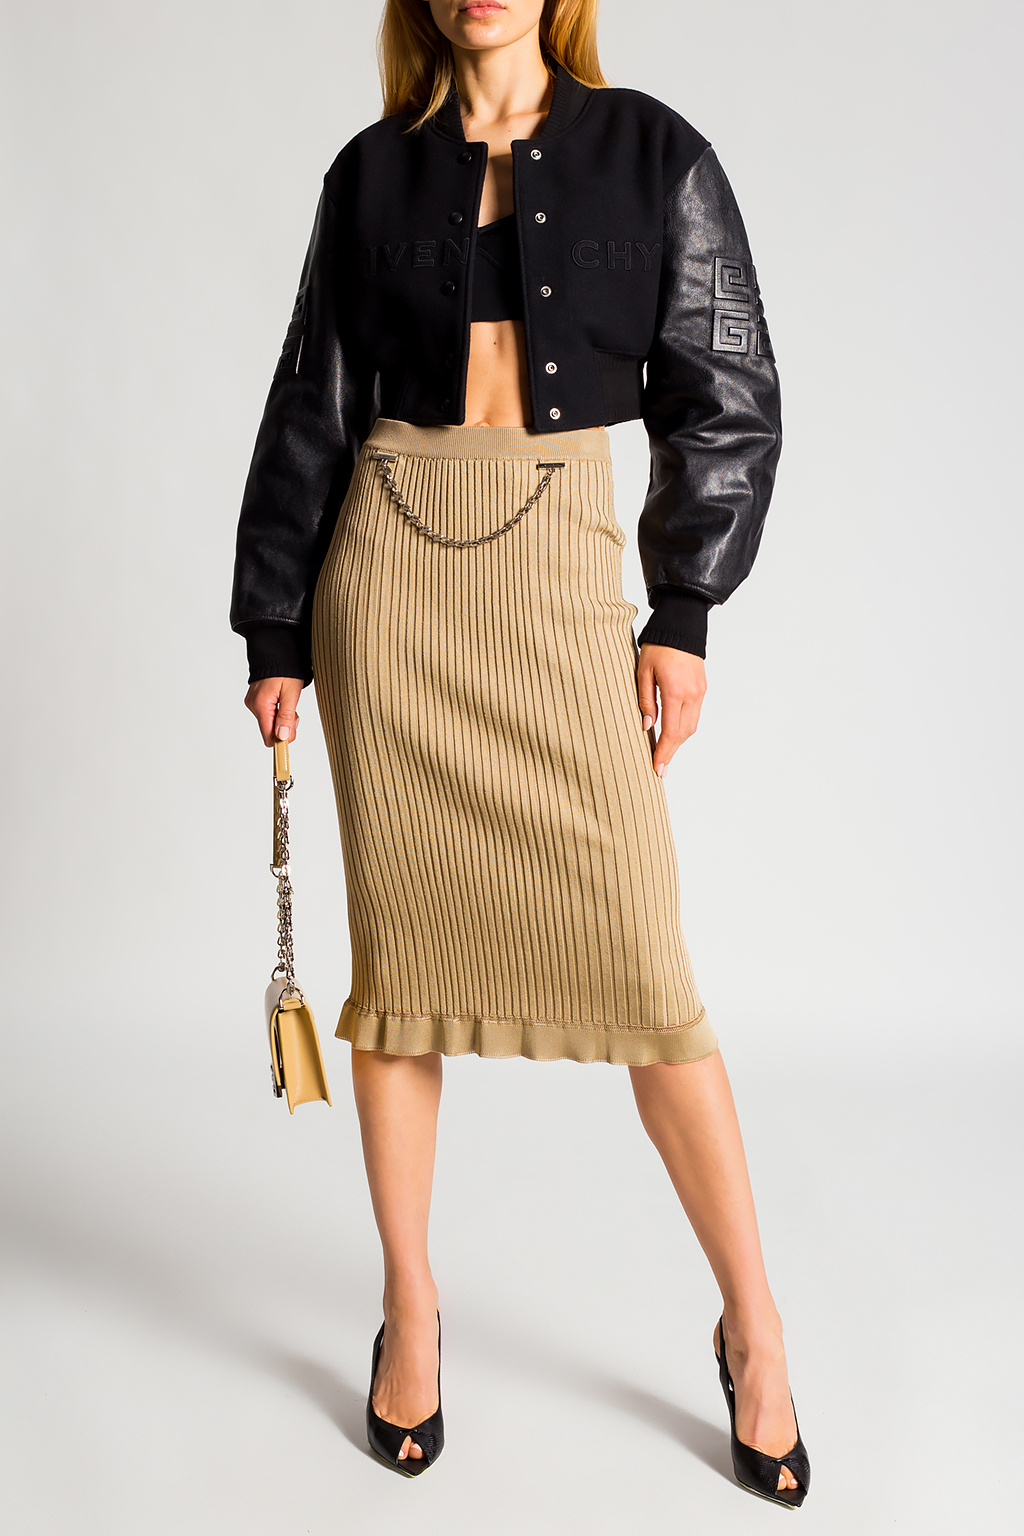 Givenchy Fitted skirt